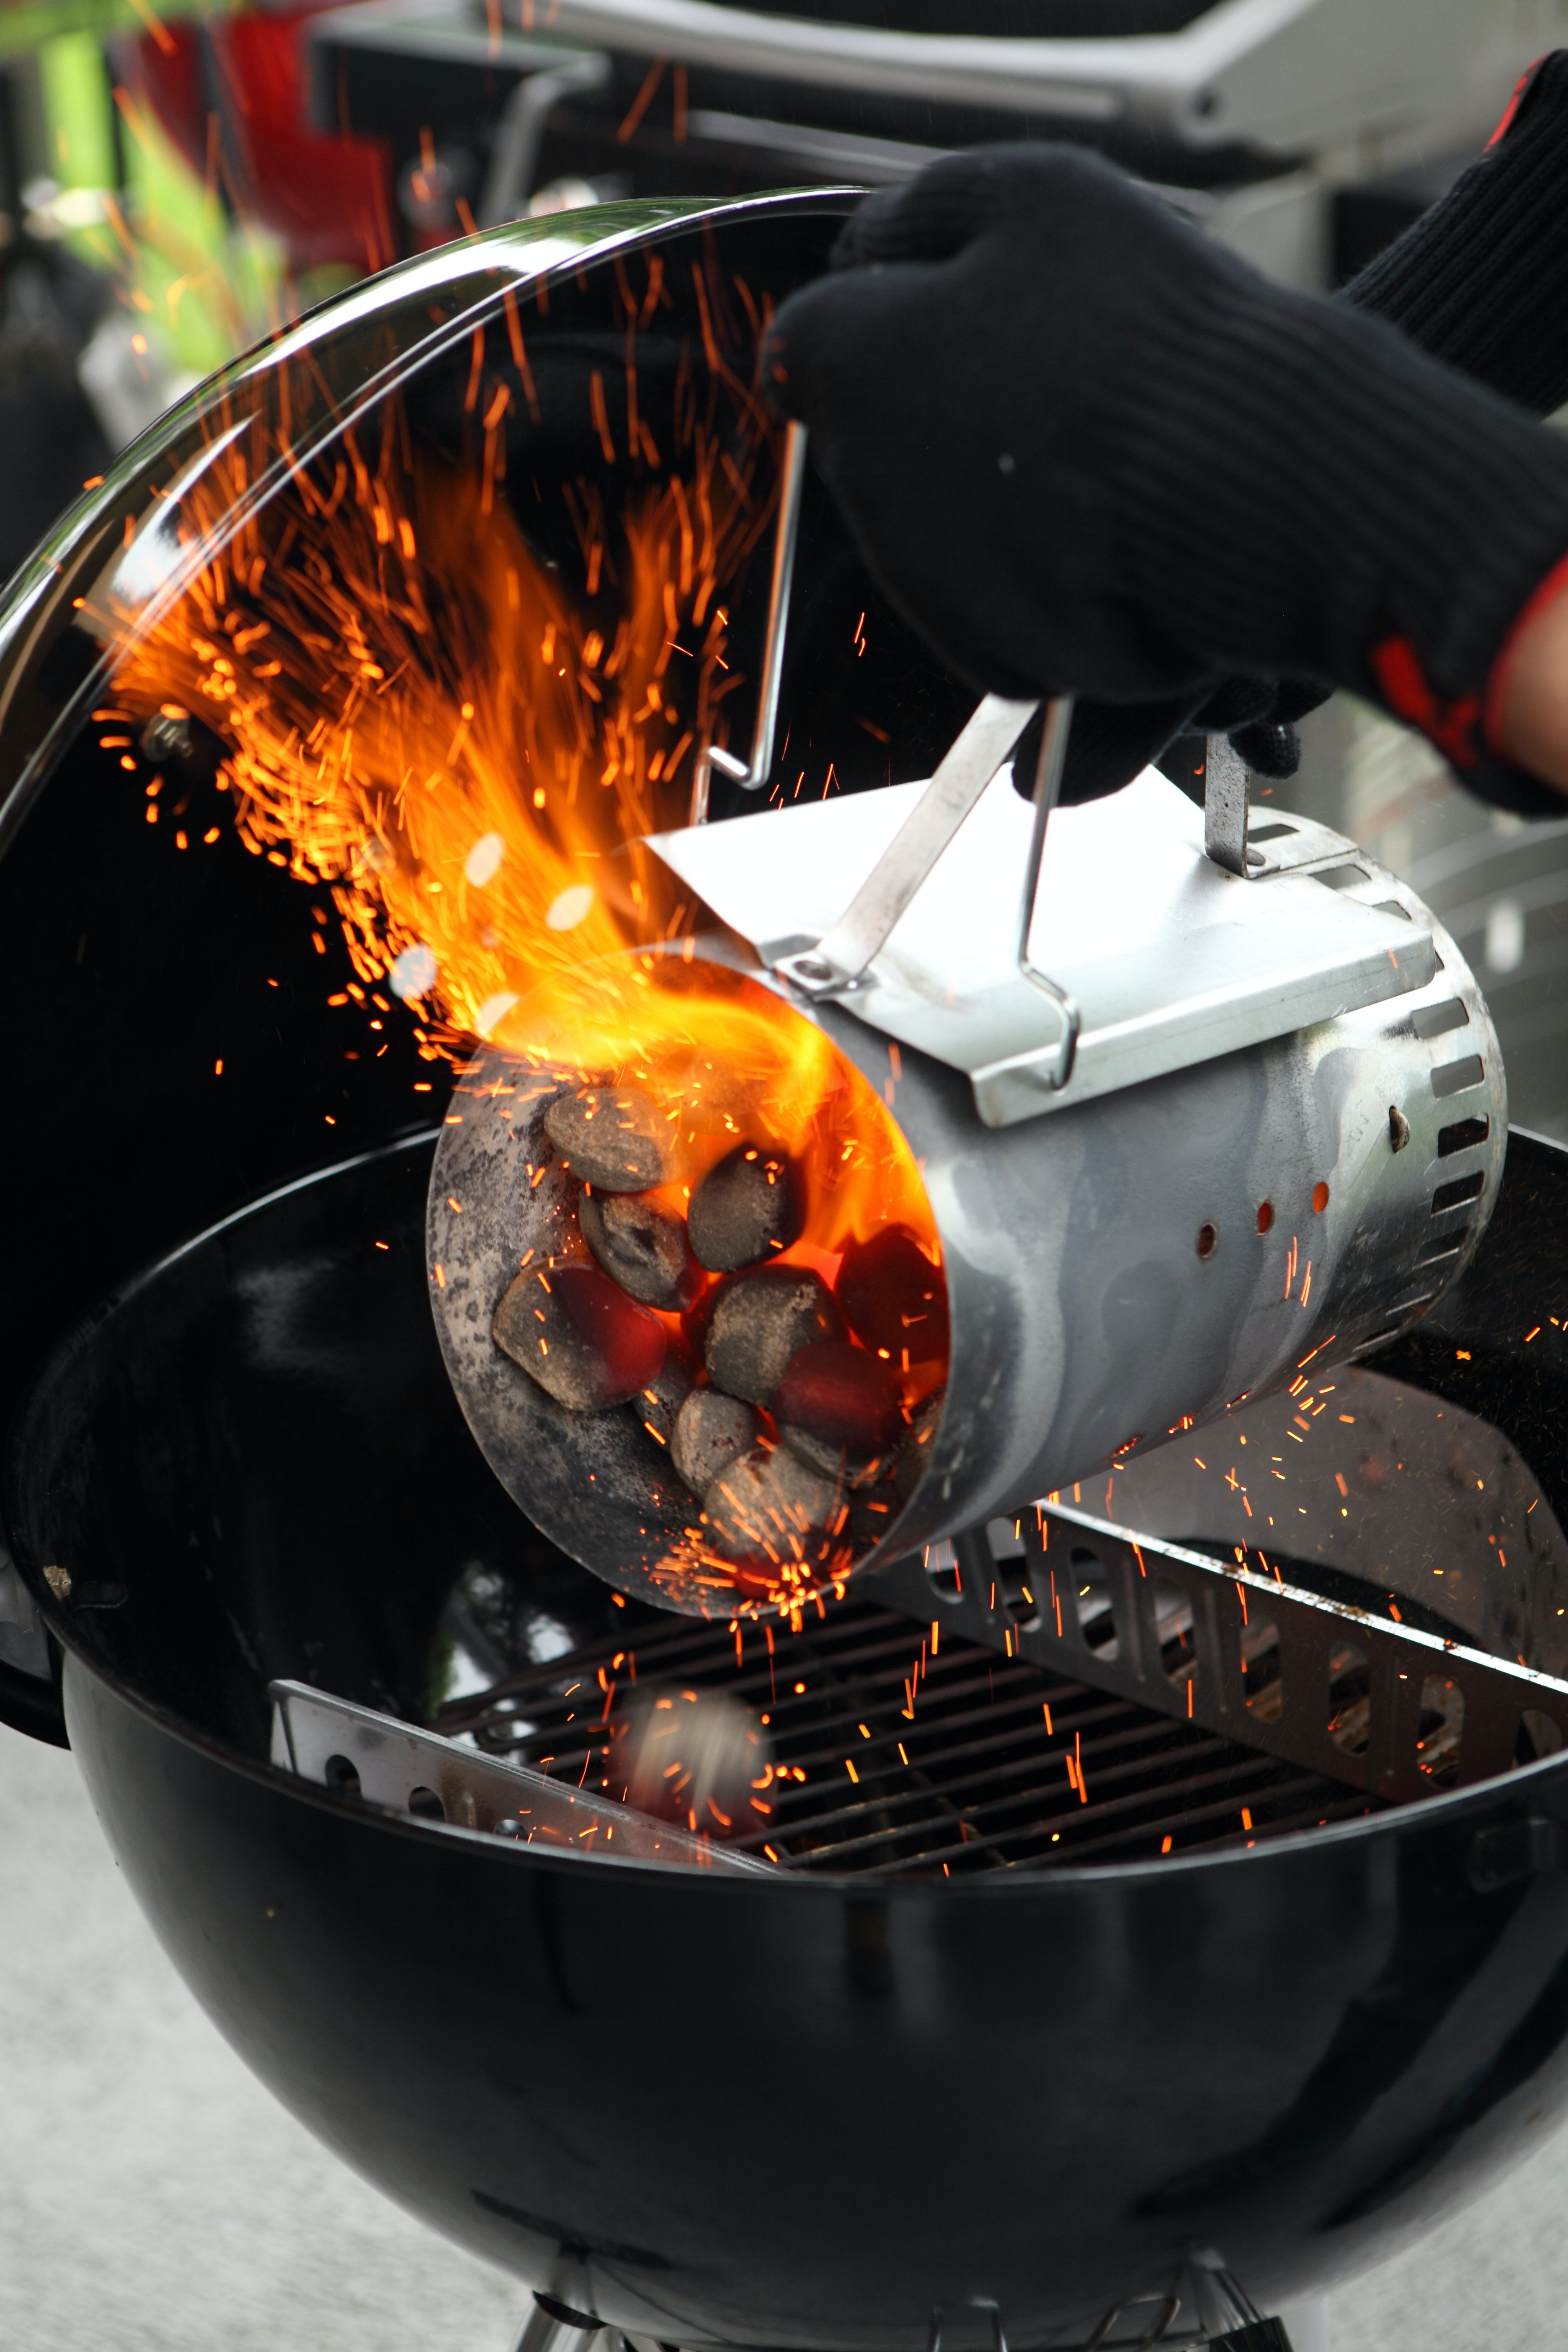 How To Use A Charcoal Barbecue